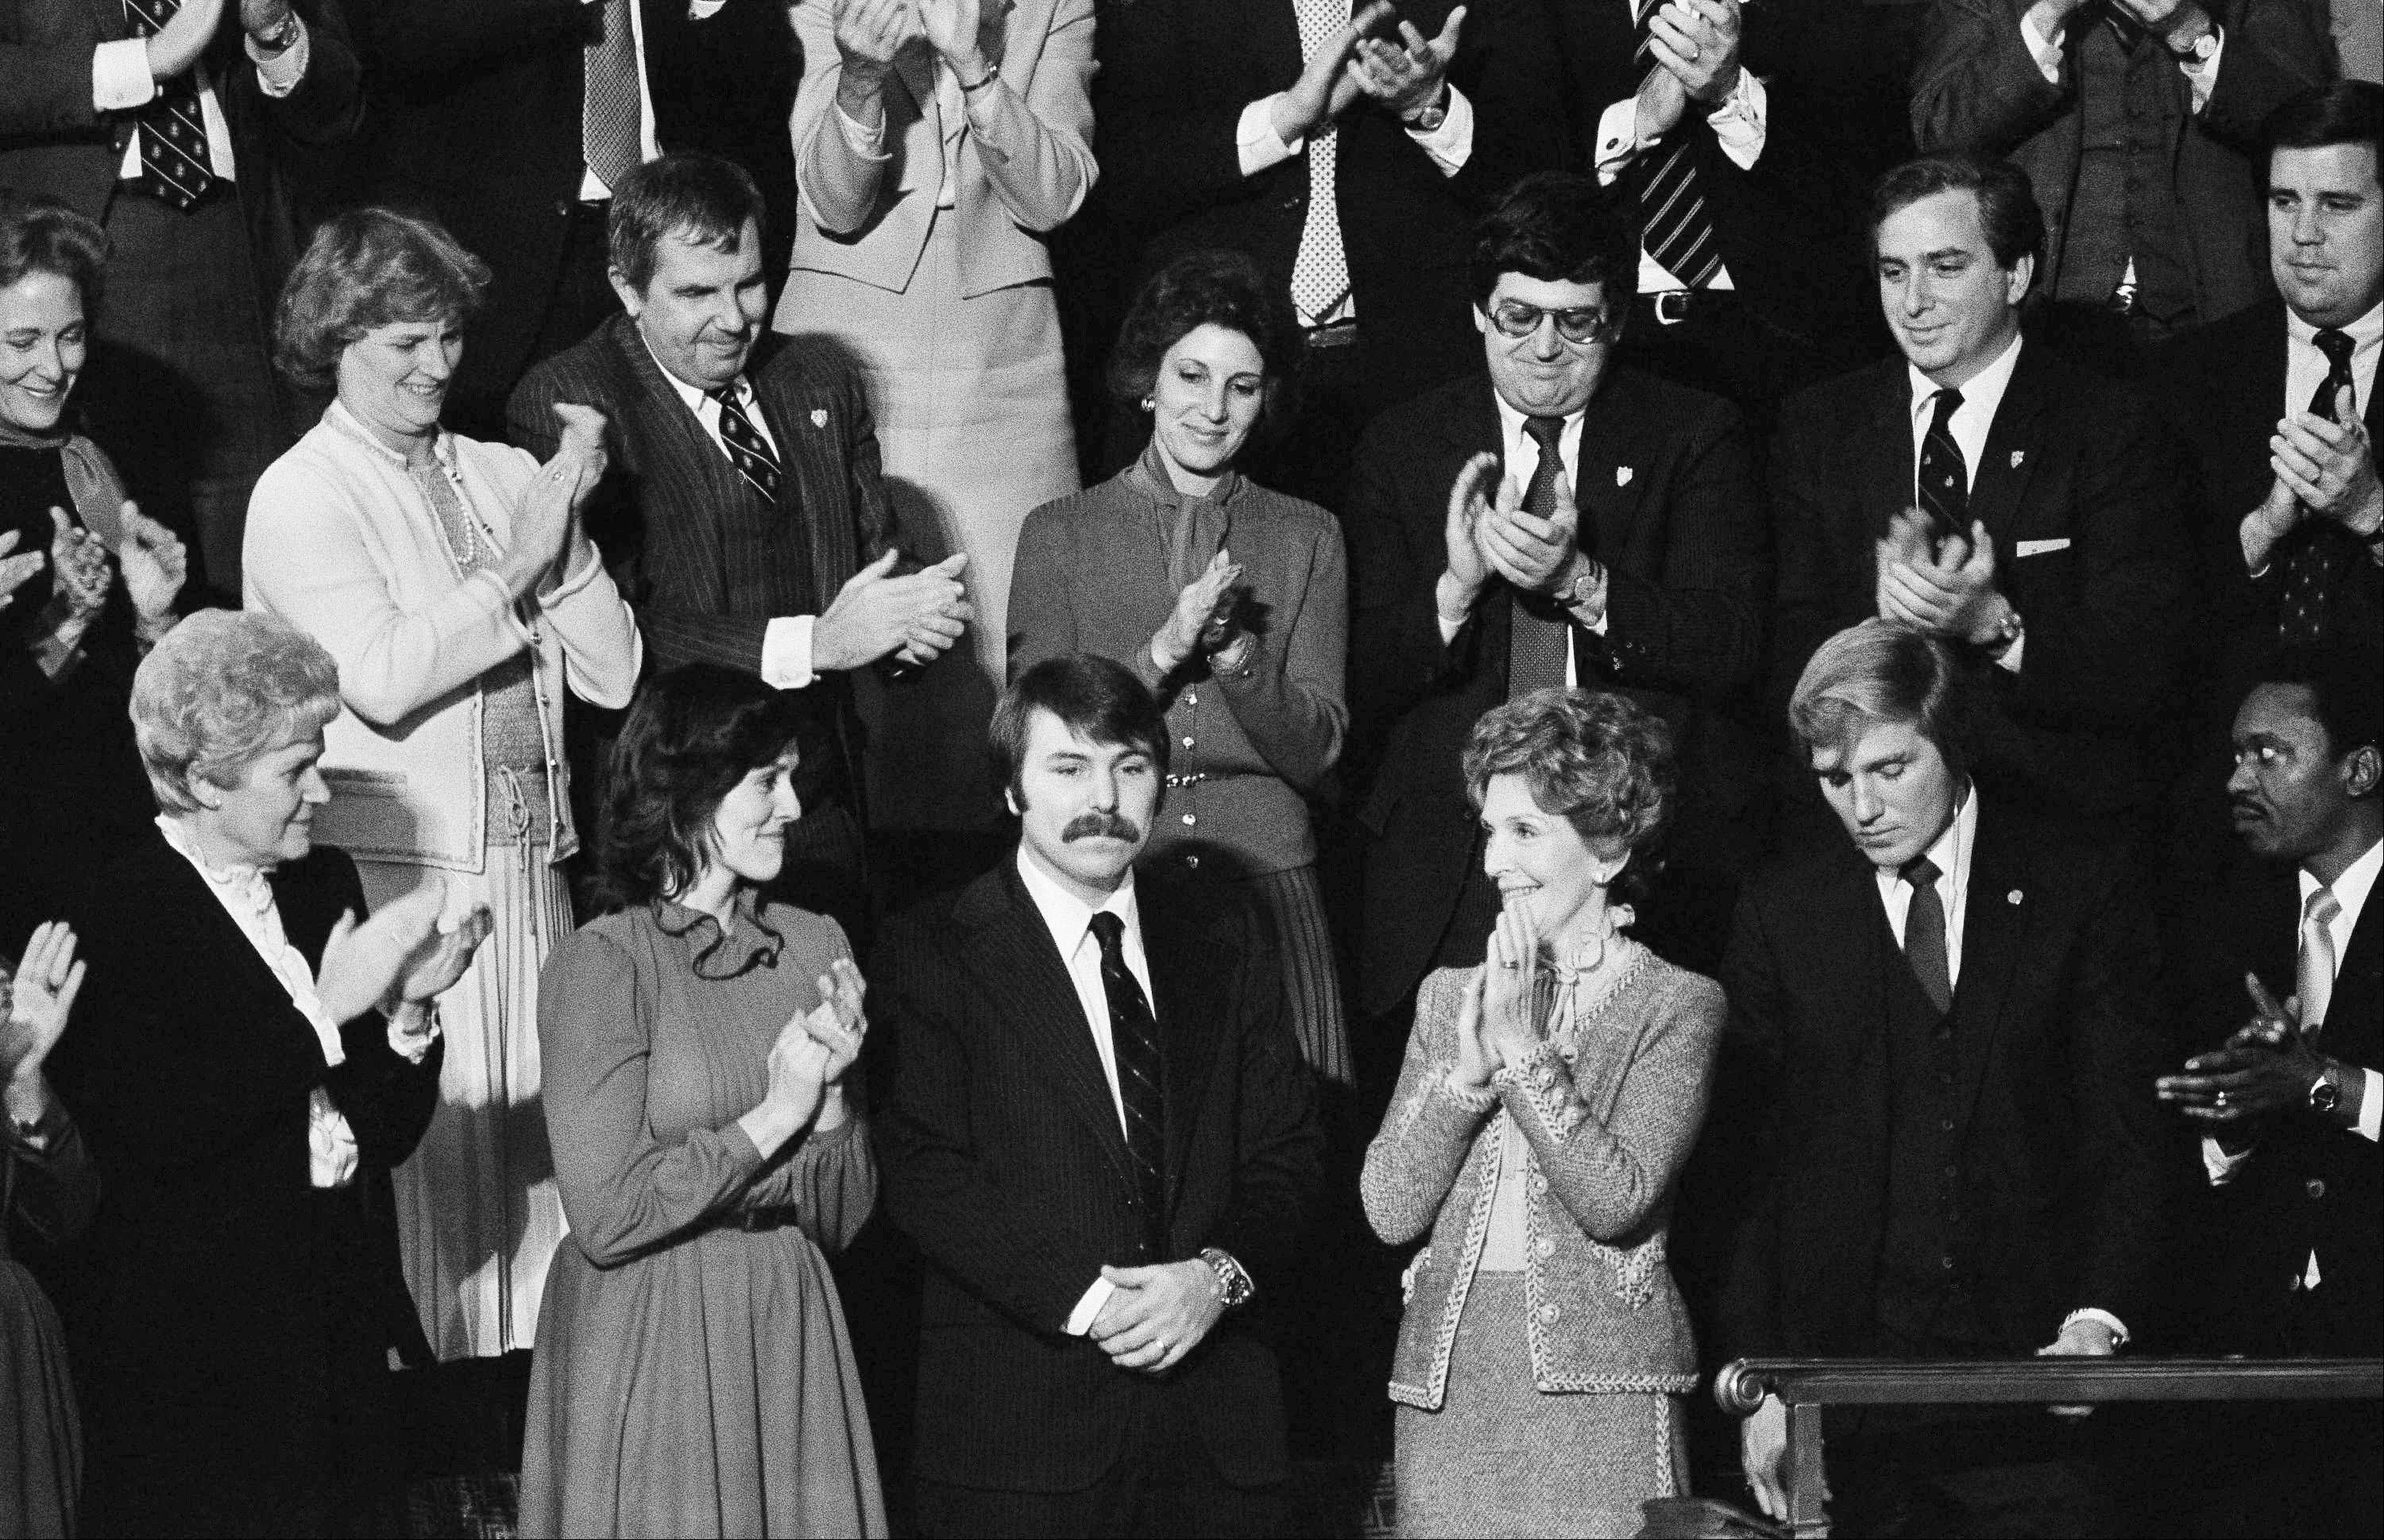 Lennie Skutnik, center front, the man who jumped into the Potomac River and saved one of the passengers aboard the Air Florida jetliner that crashed on Jan. 13, 1983, receives applause from first lady Nancy Reagan and his wife, second from left, after President Ronald Reagan made mention of the event in his State of the Union addres